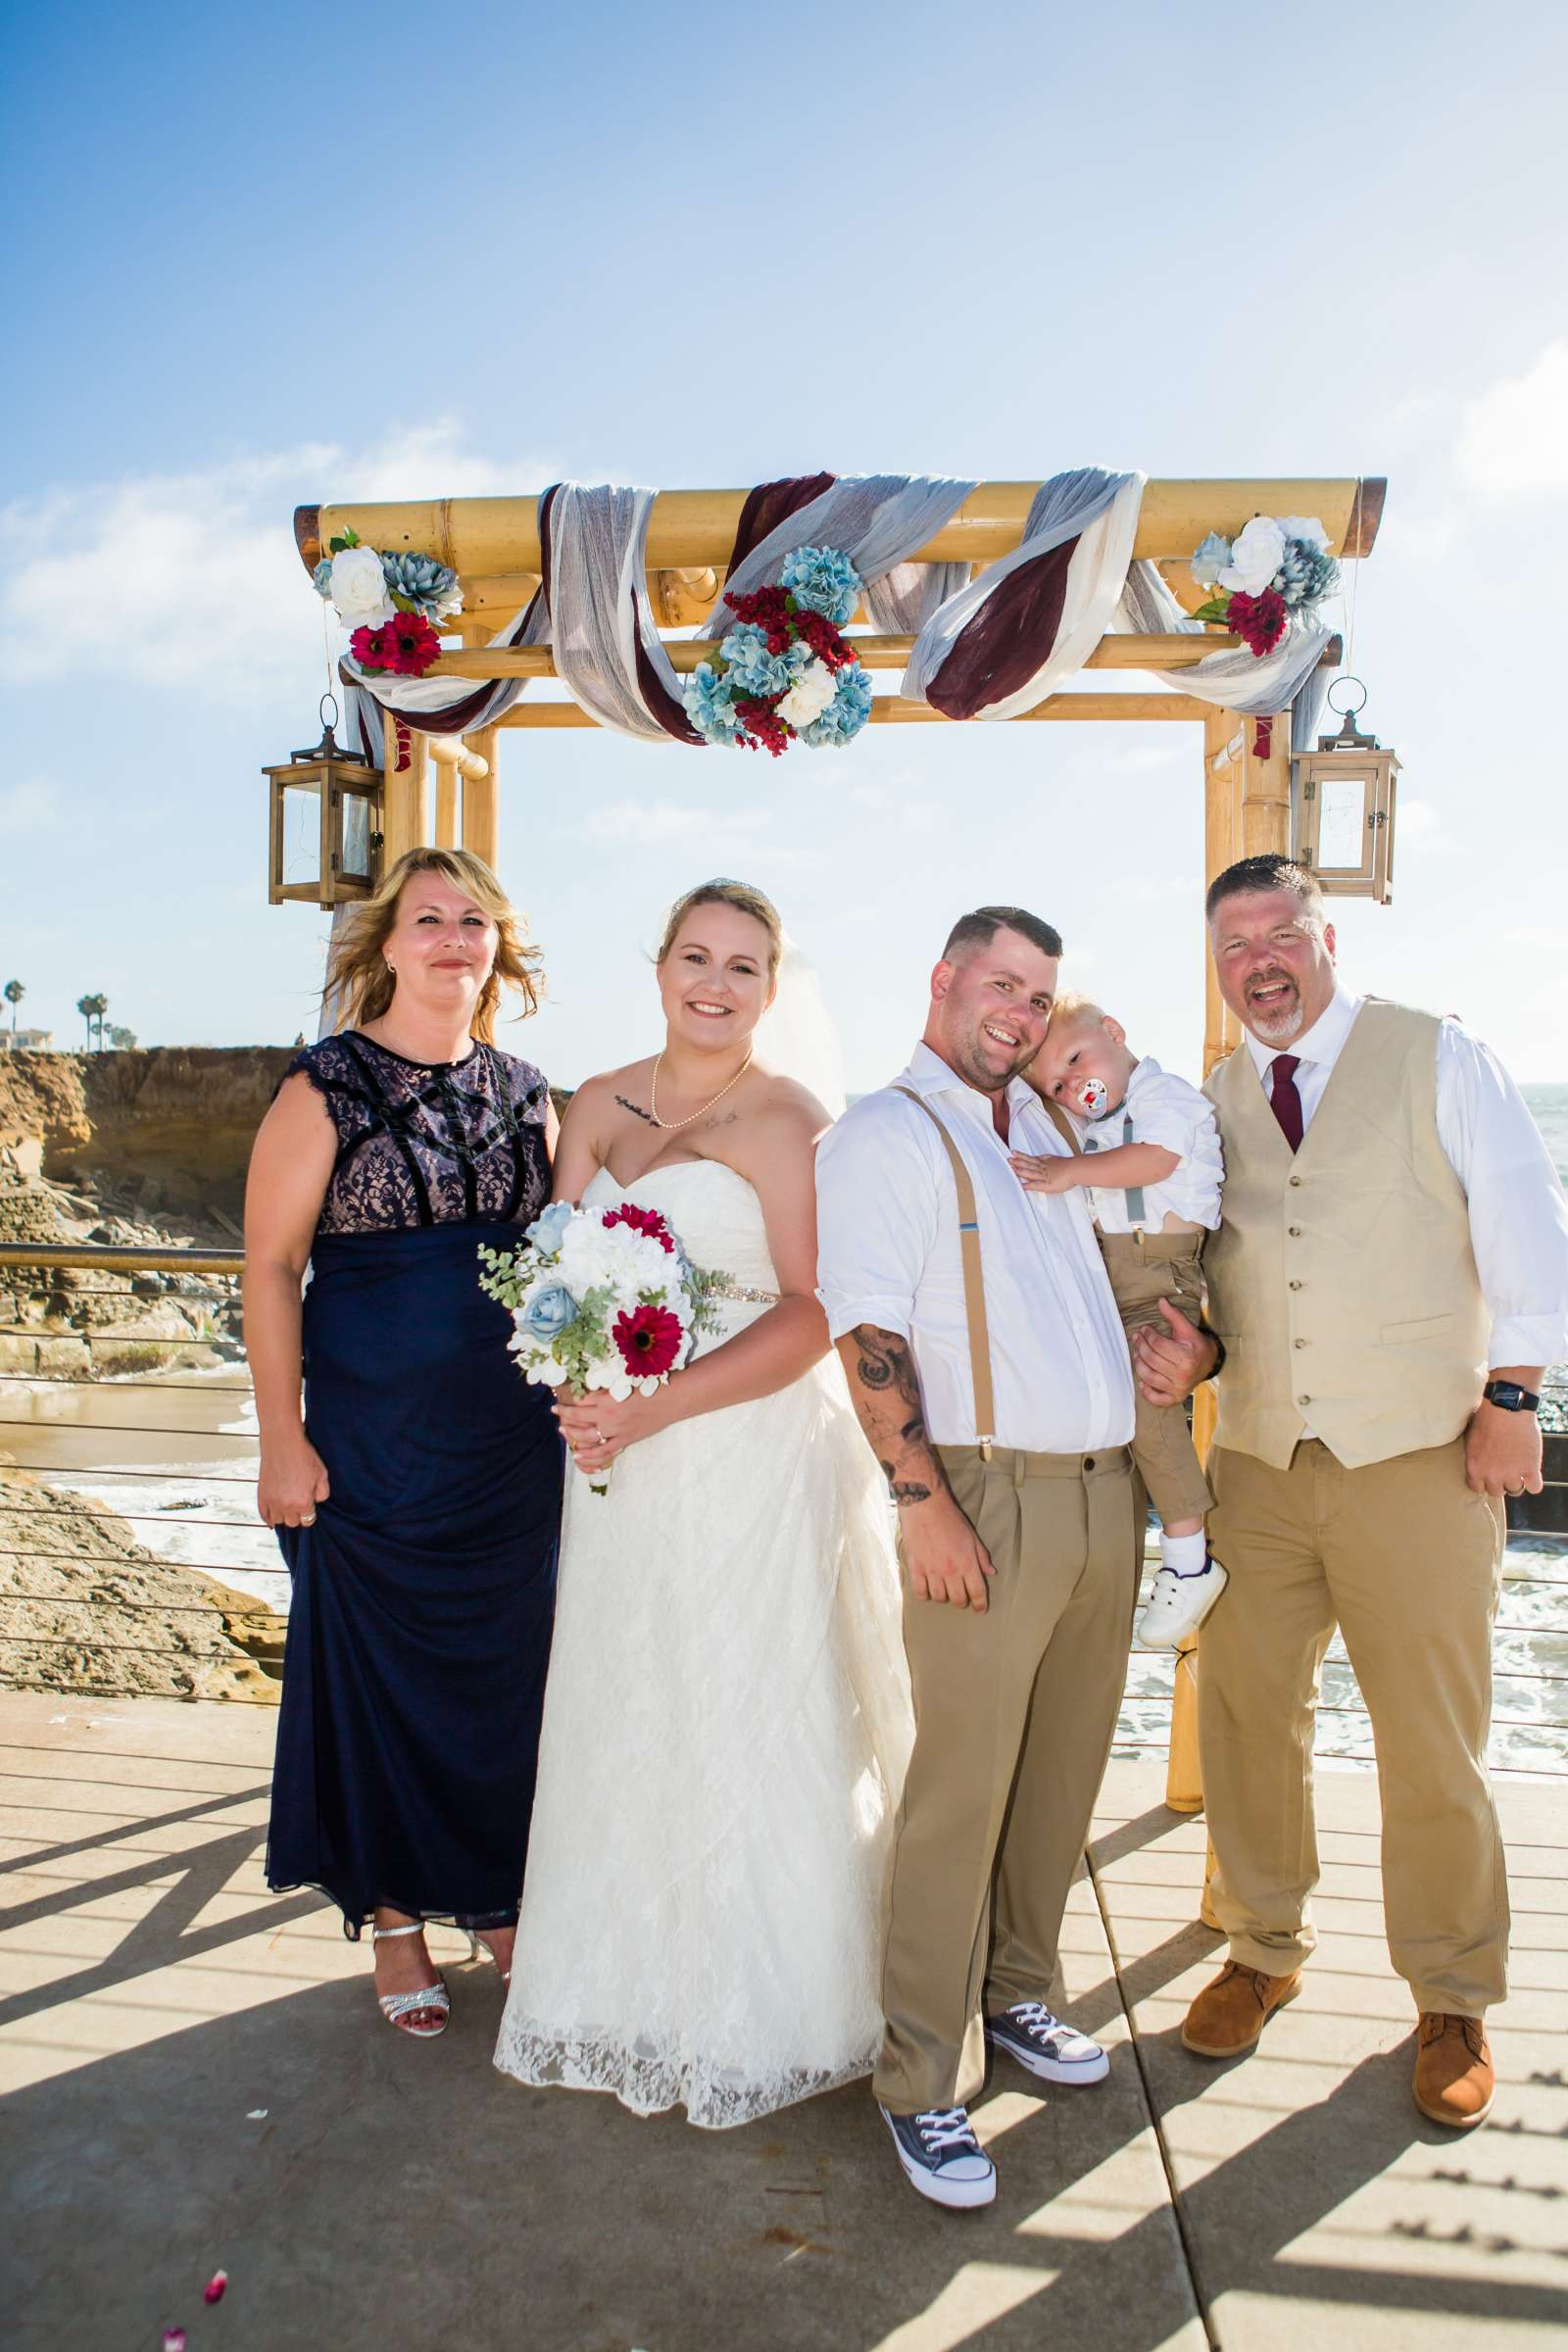 The Inn at Sunset Cliffs Wedding, Melinda and Benjamin Wedding Photo #66 by True Photography